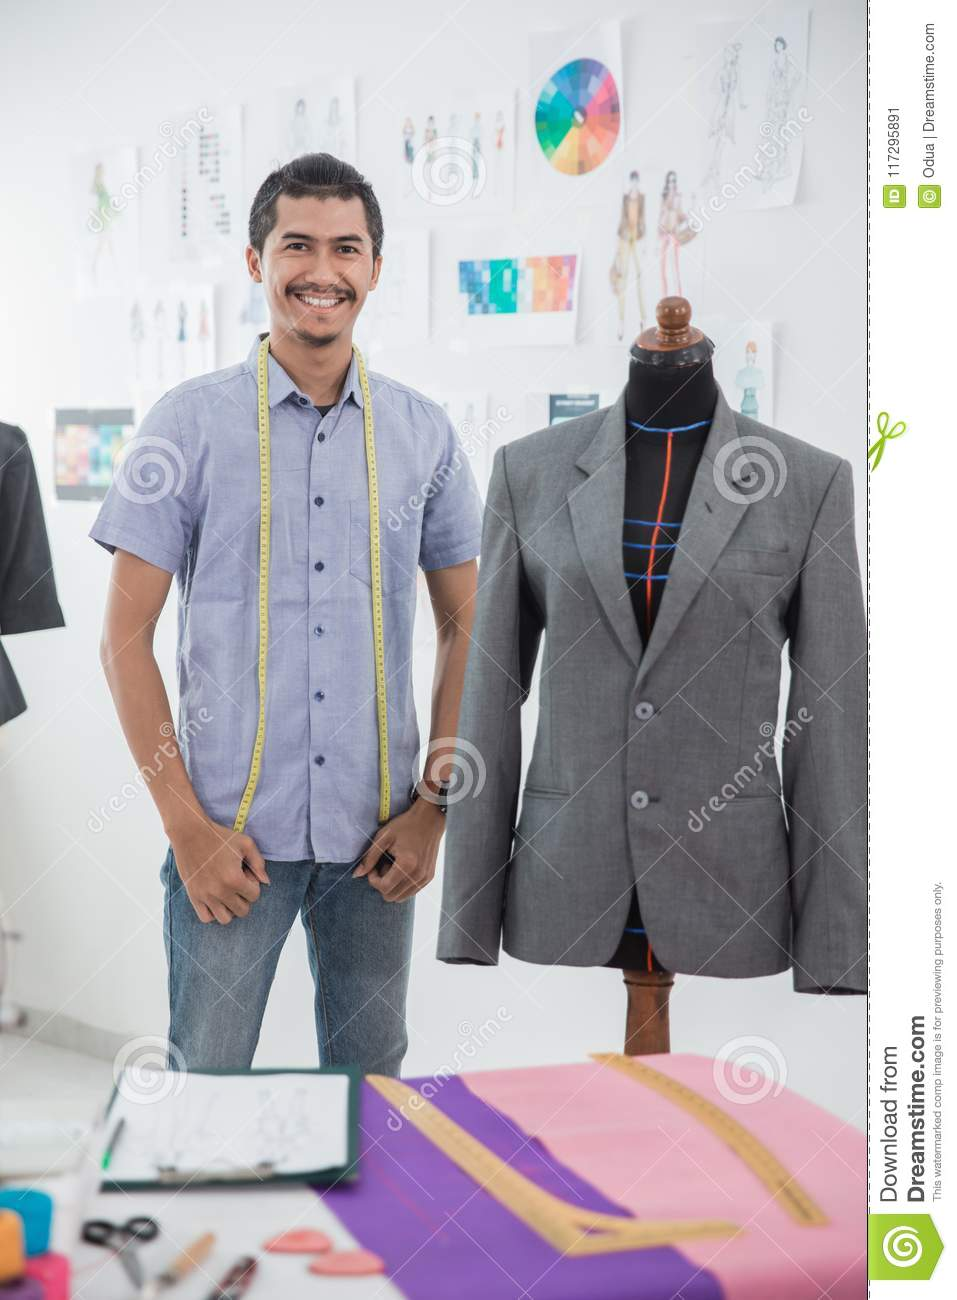 Fashion Designer Make A Suit Stock Image Image Of Style Adult 117295891